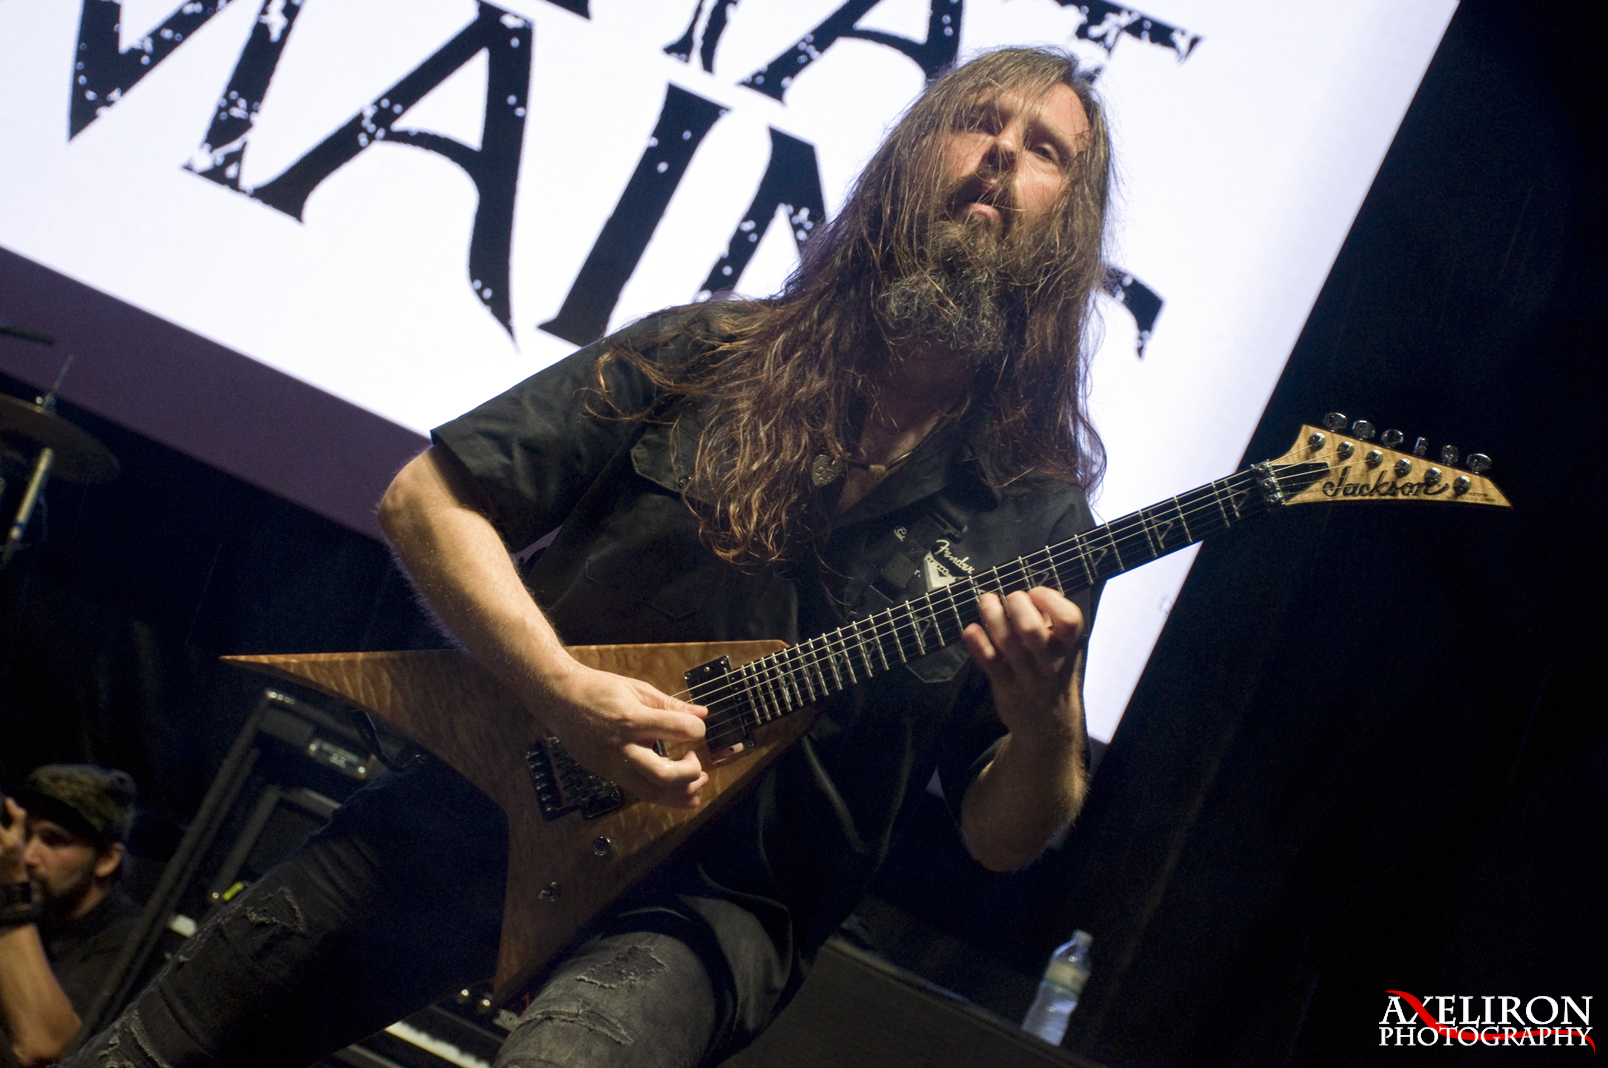 Late All That Remains Guitarist Oli Herbert Died of Drowning According to Toxicology Reports